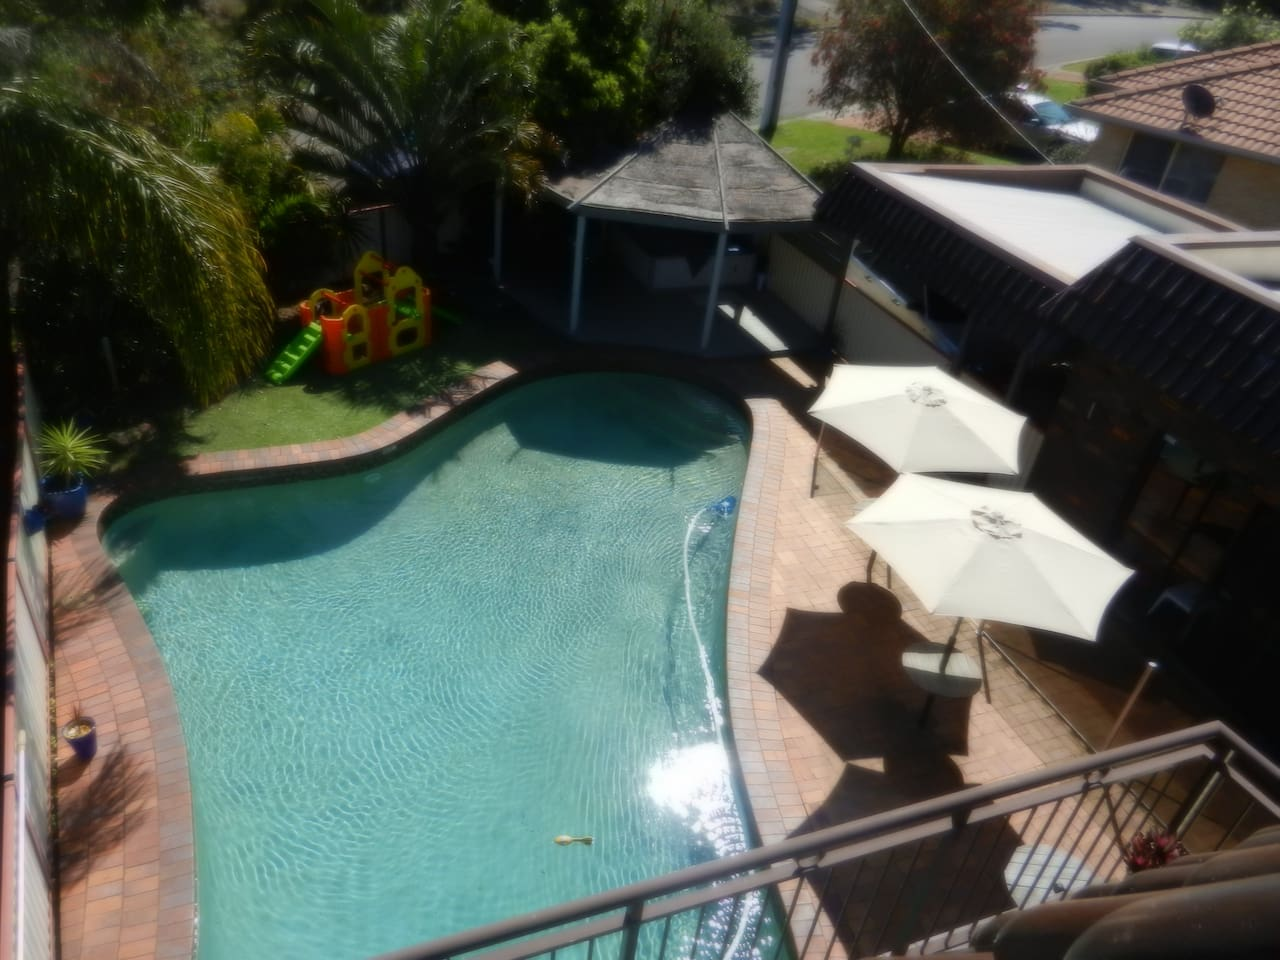 Location shot from balcony showing pool, spa and grassed area. Fun for all ages.